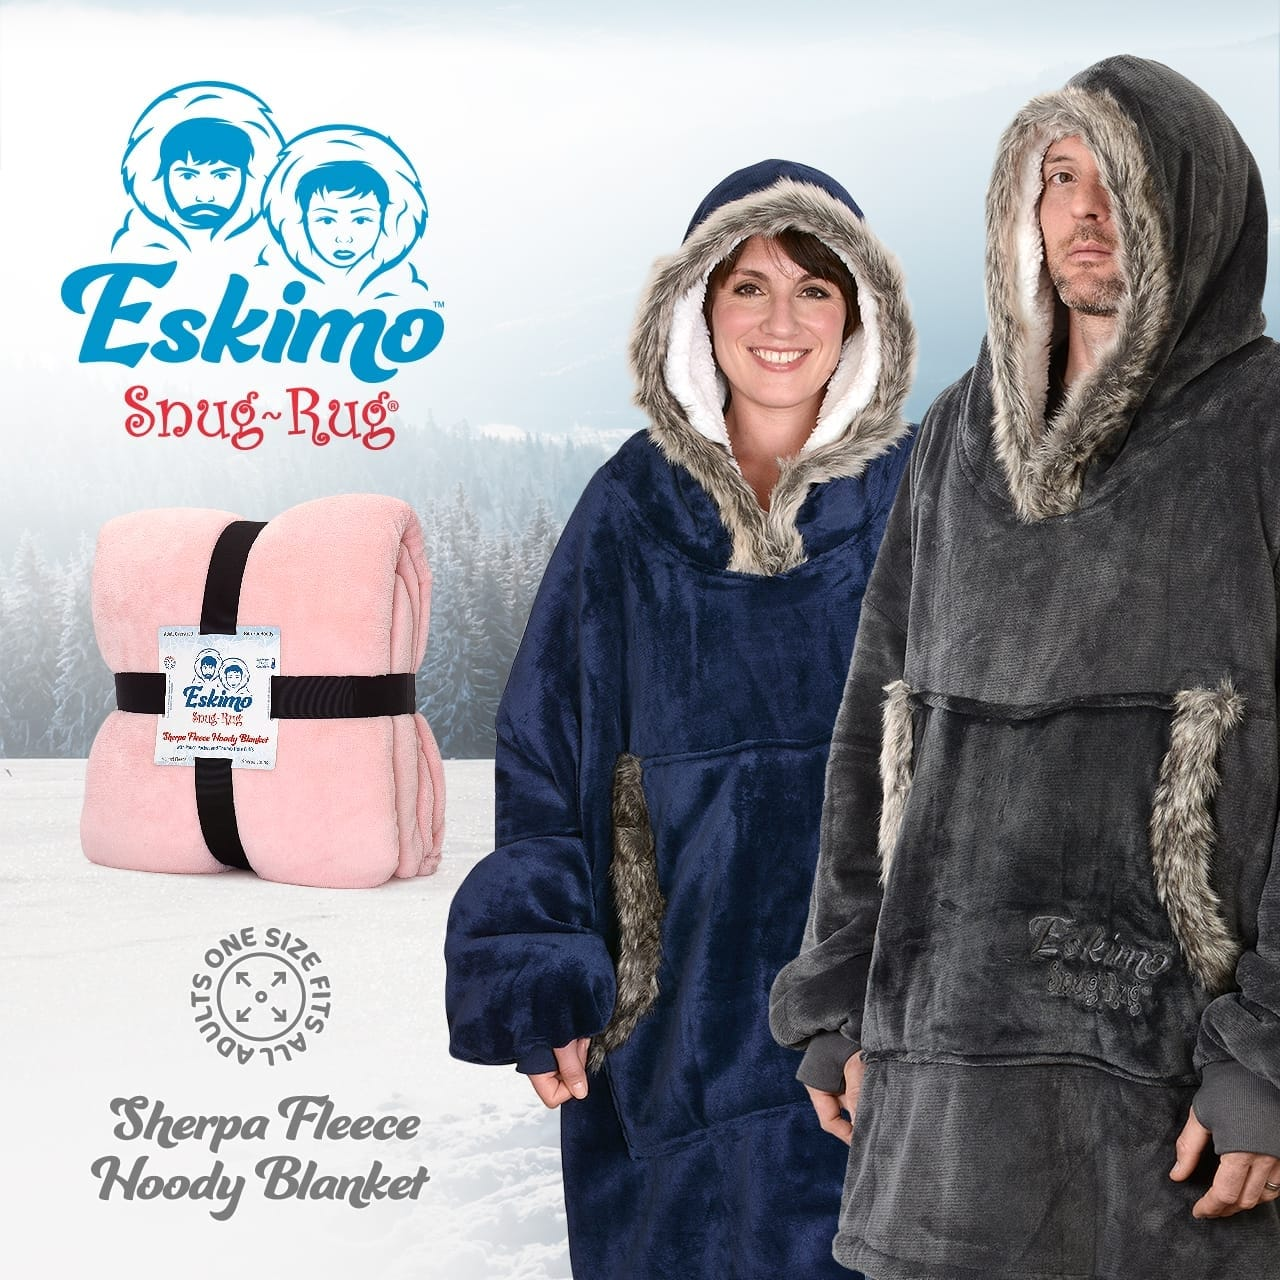 The Eskimo Blanket Hoodie Pink By Snug Rug